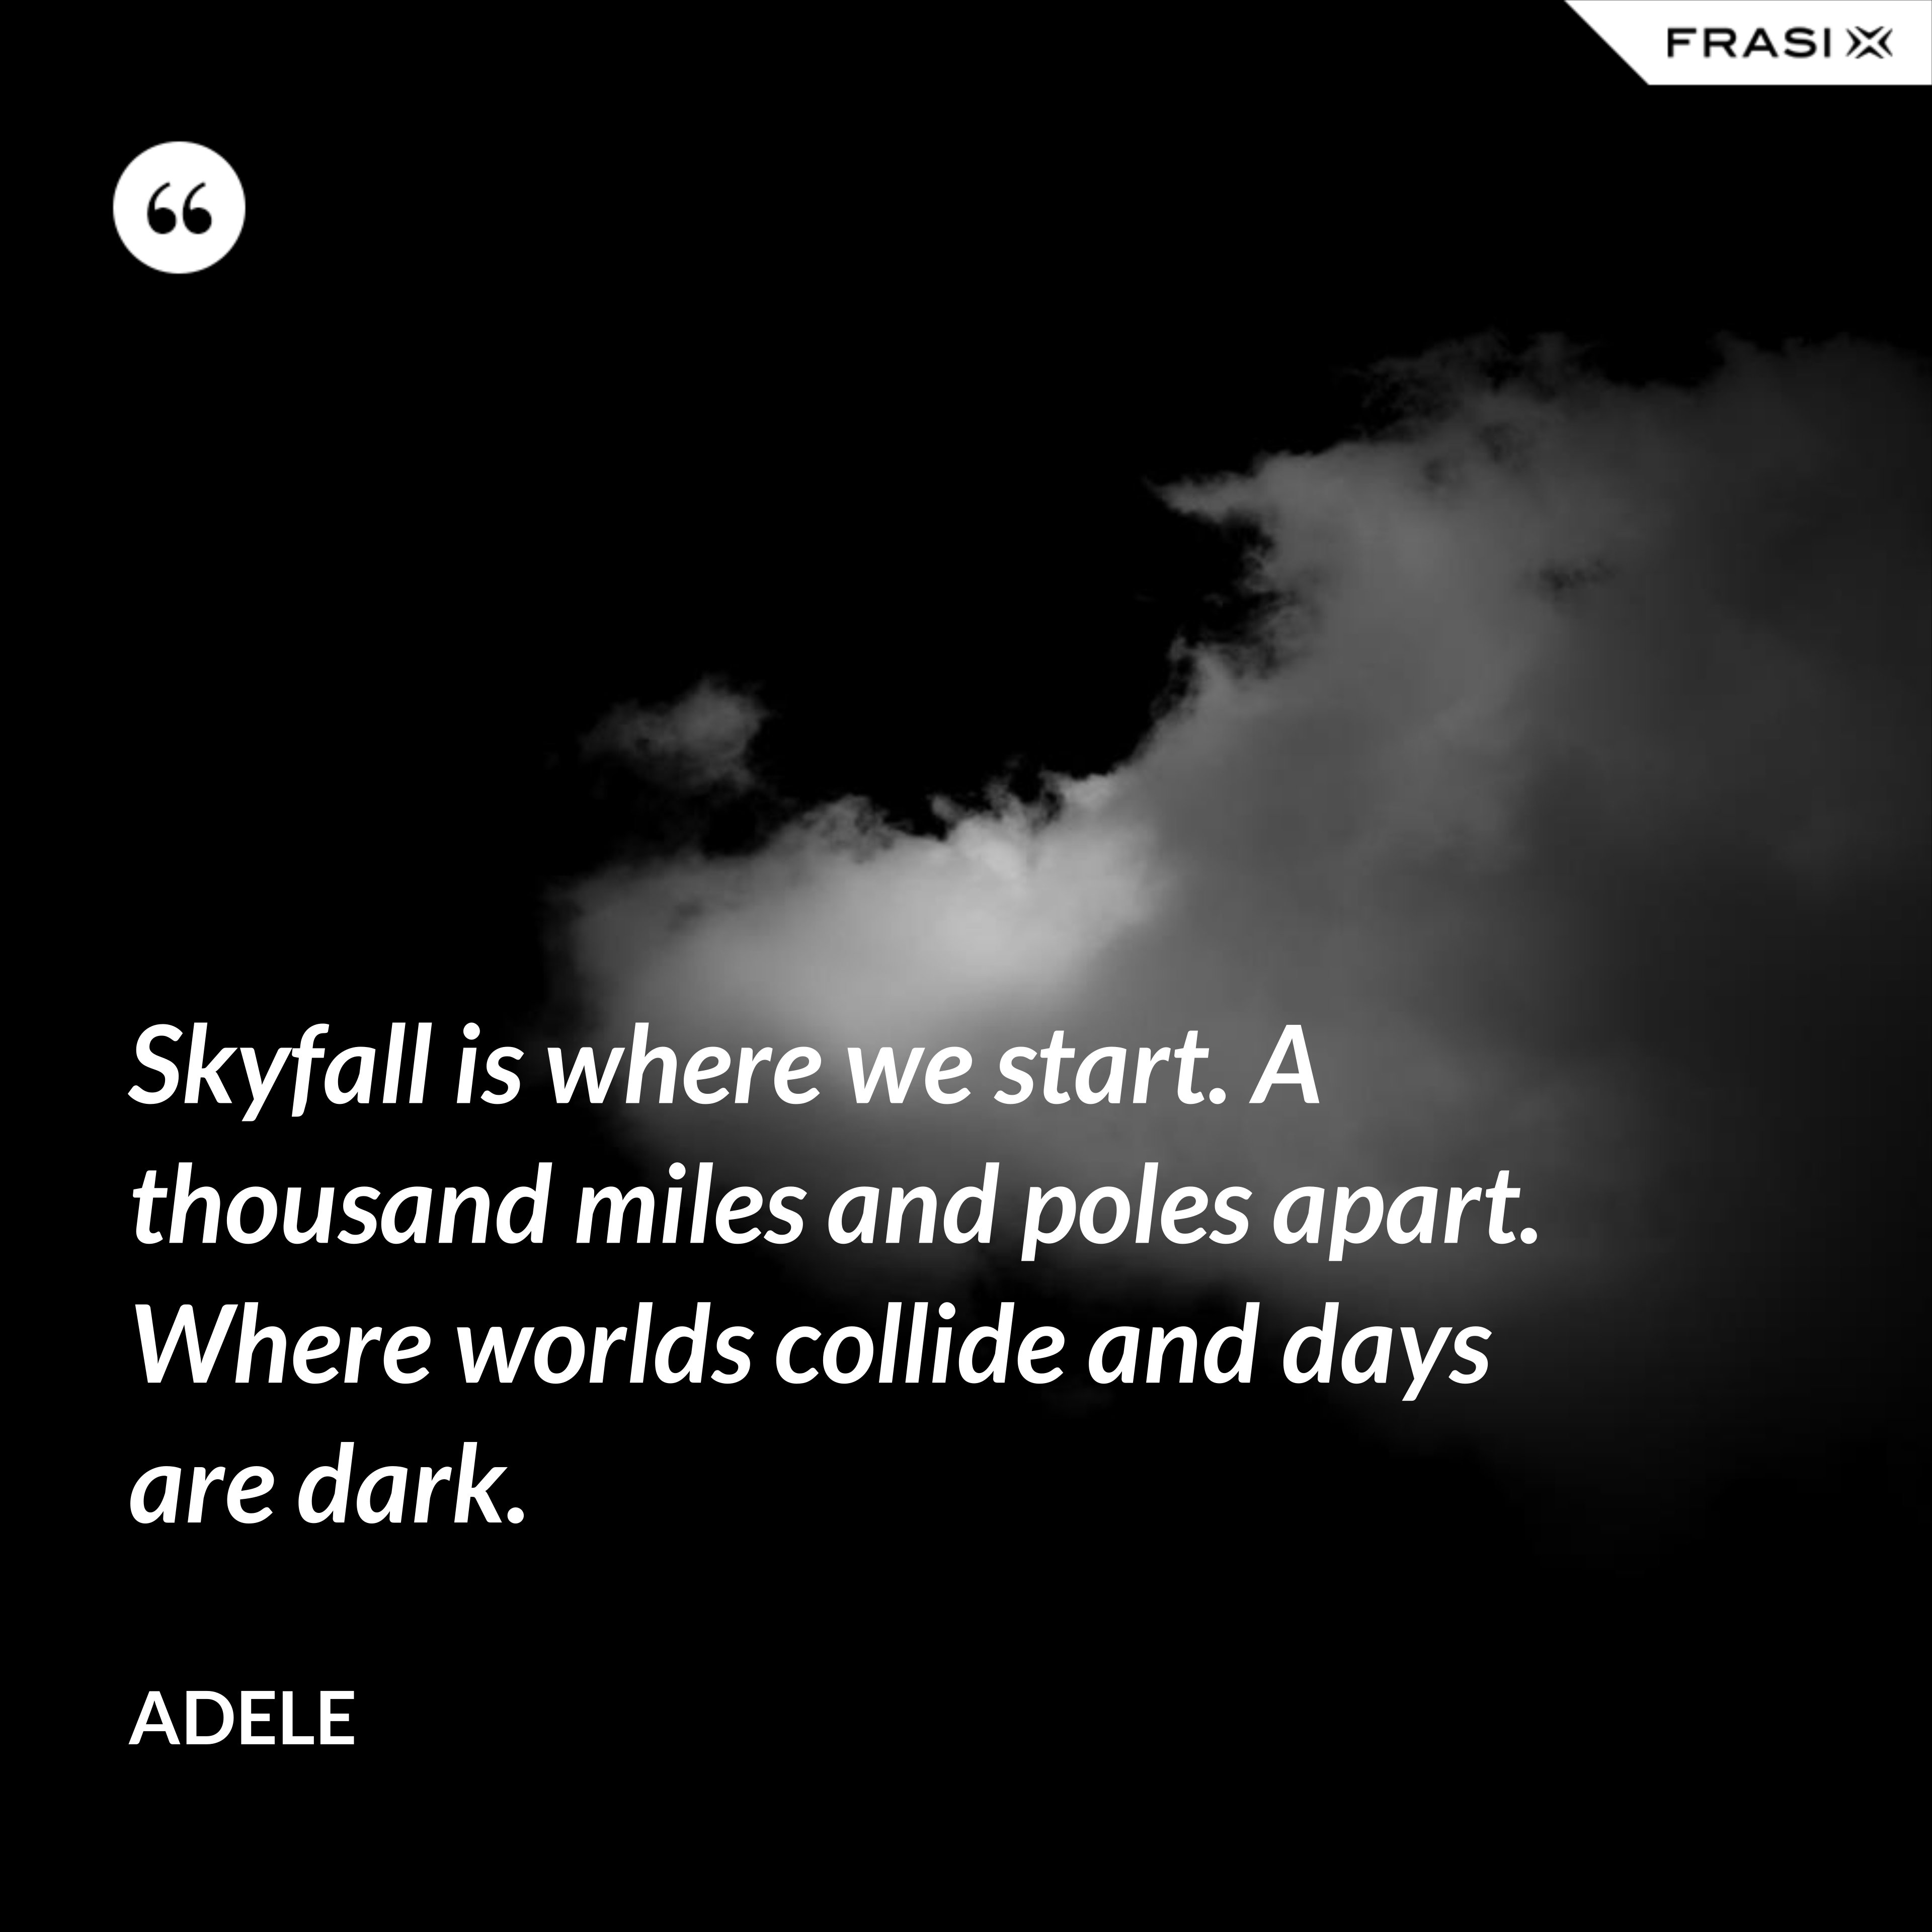 Skyfall is where we start. A thousand miles and poles apart. Where worlds collide and days are dark. - Adele